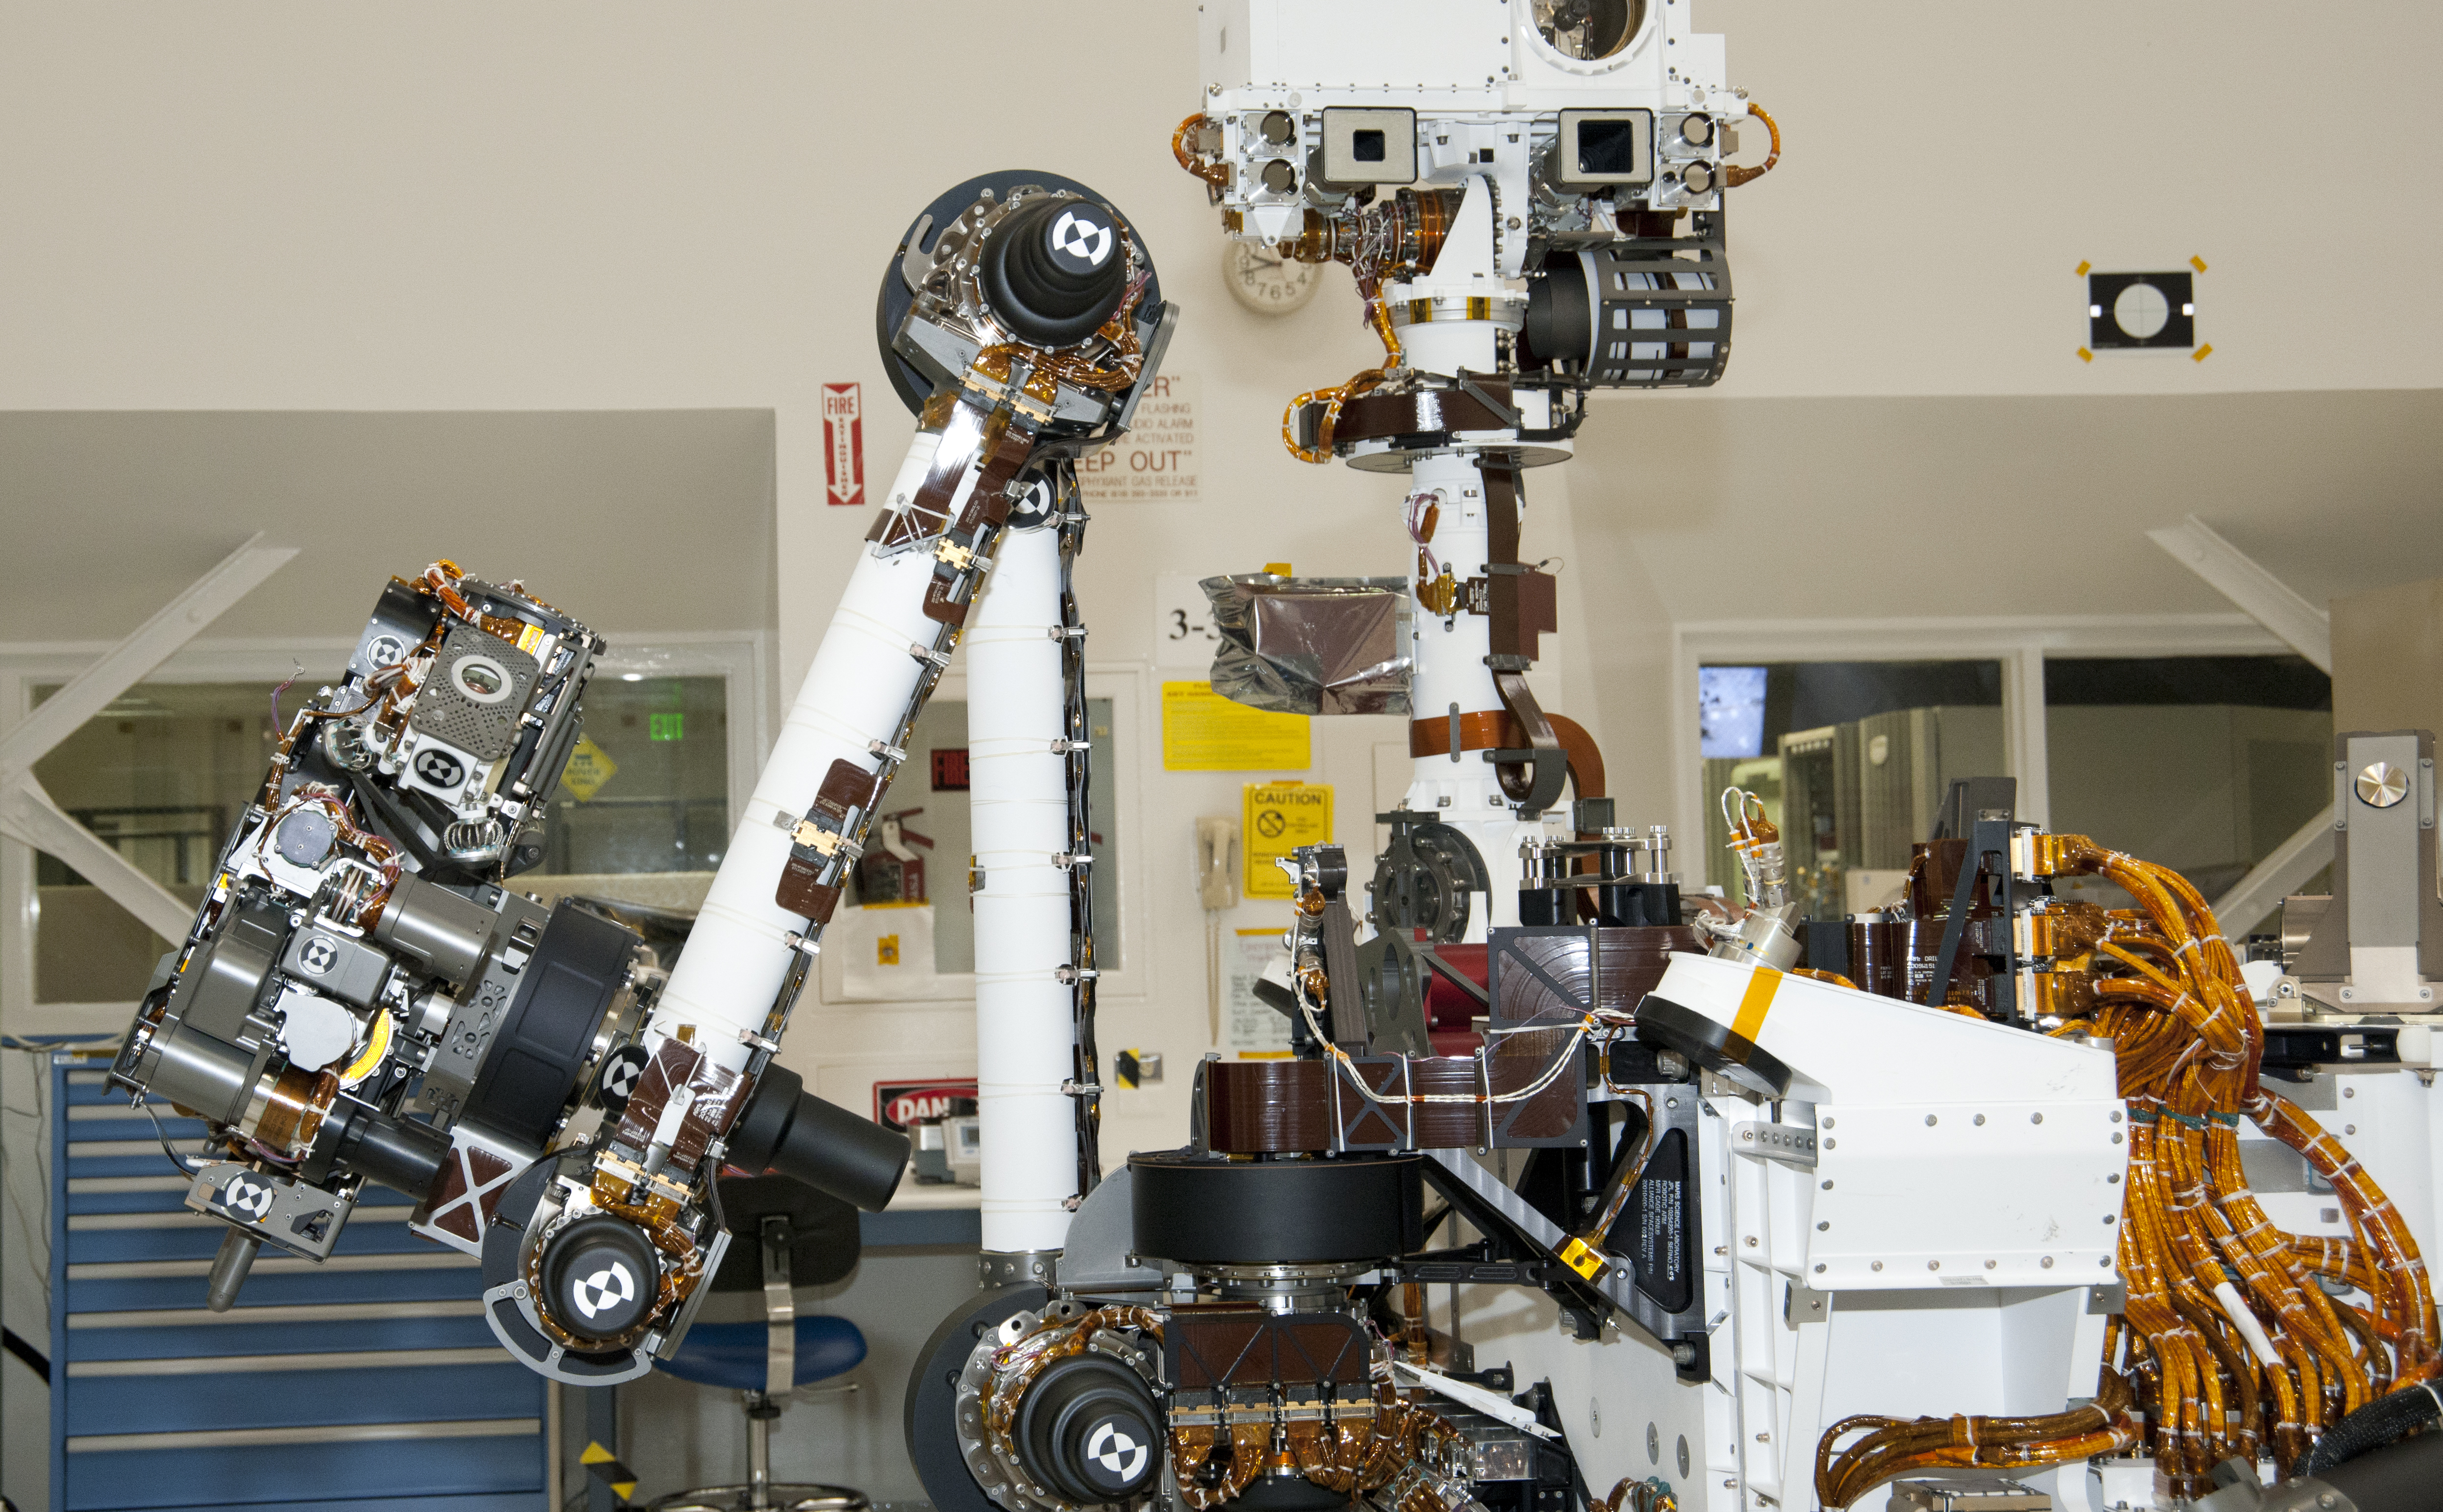 The arm and the remote sensing mast of the Mars rover Curiosity each carry science instruments and other tools for NASA's Mars Science Laboratory mission.